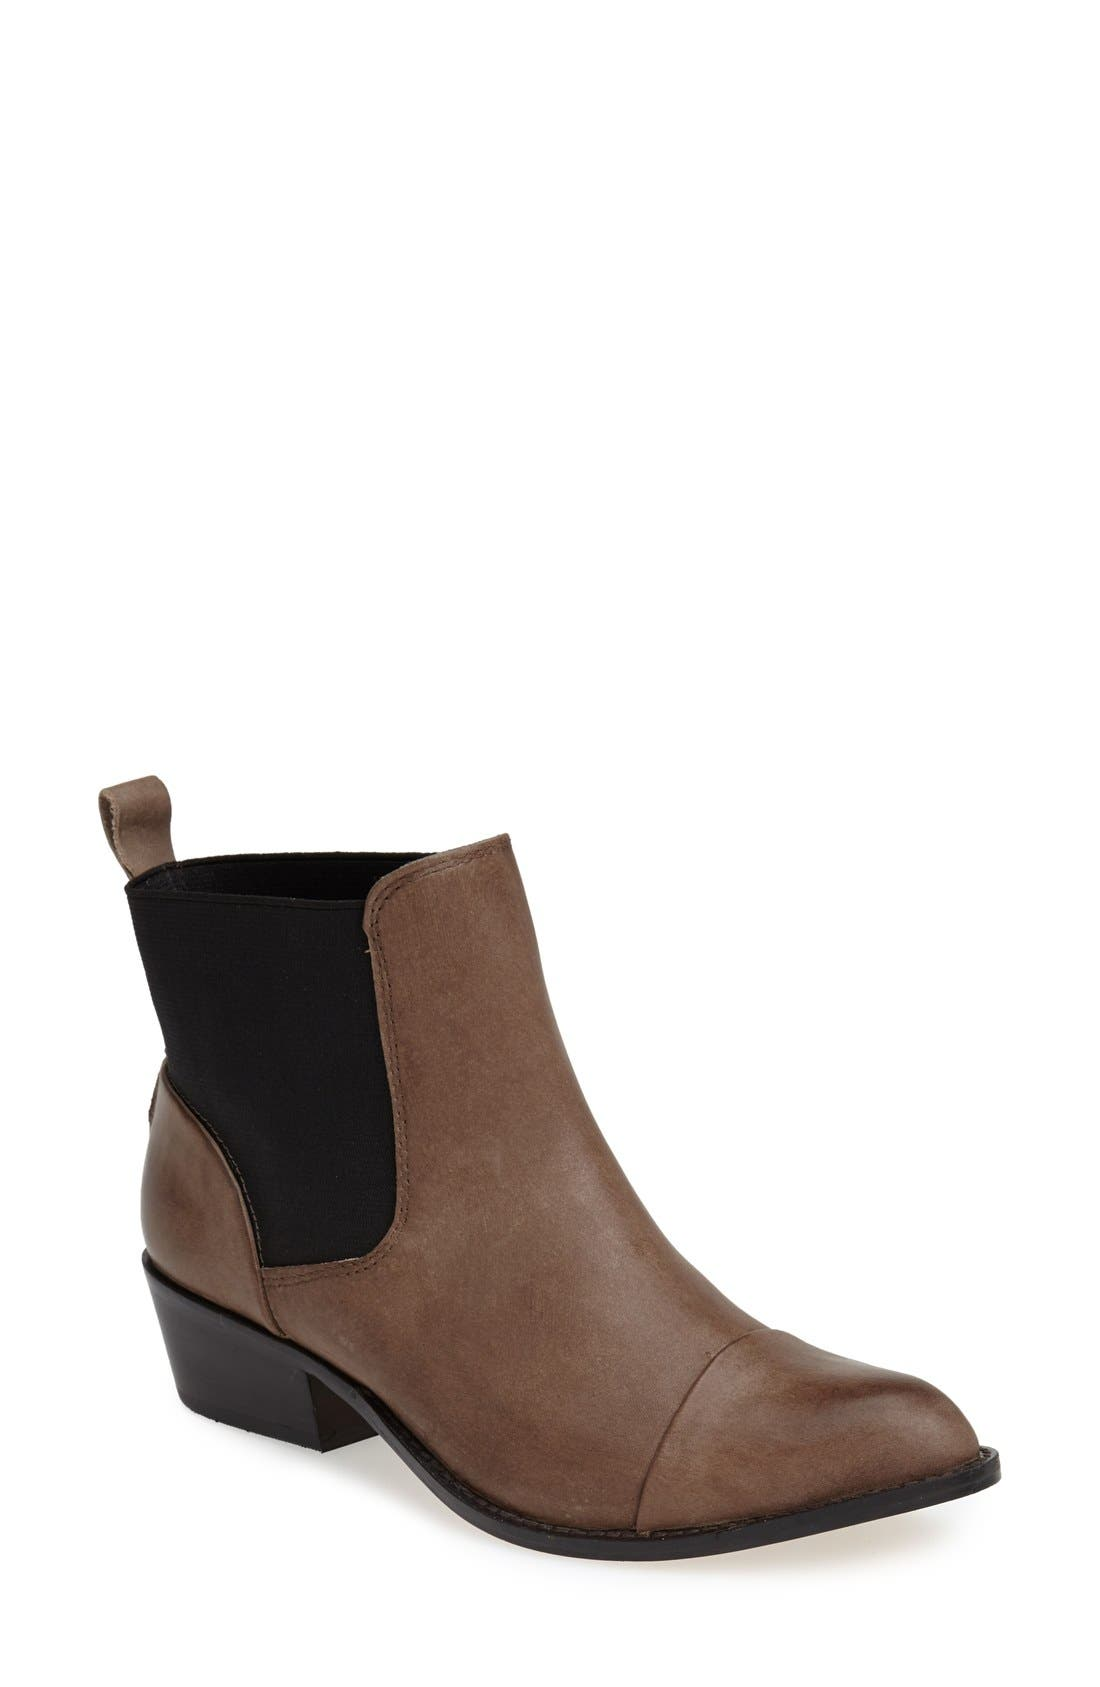 Main Image - DV by Dolce Vita 'Vancie' Leather Bootie (Women)